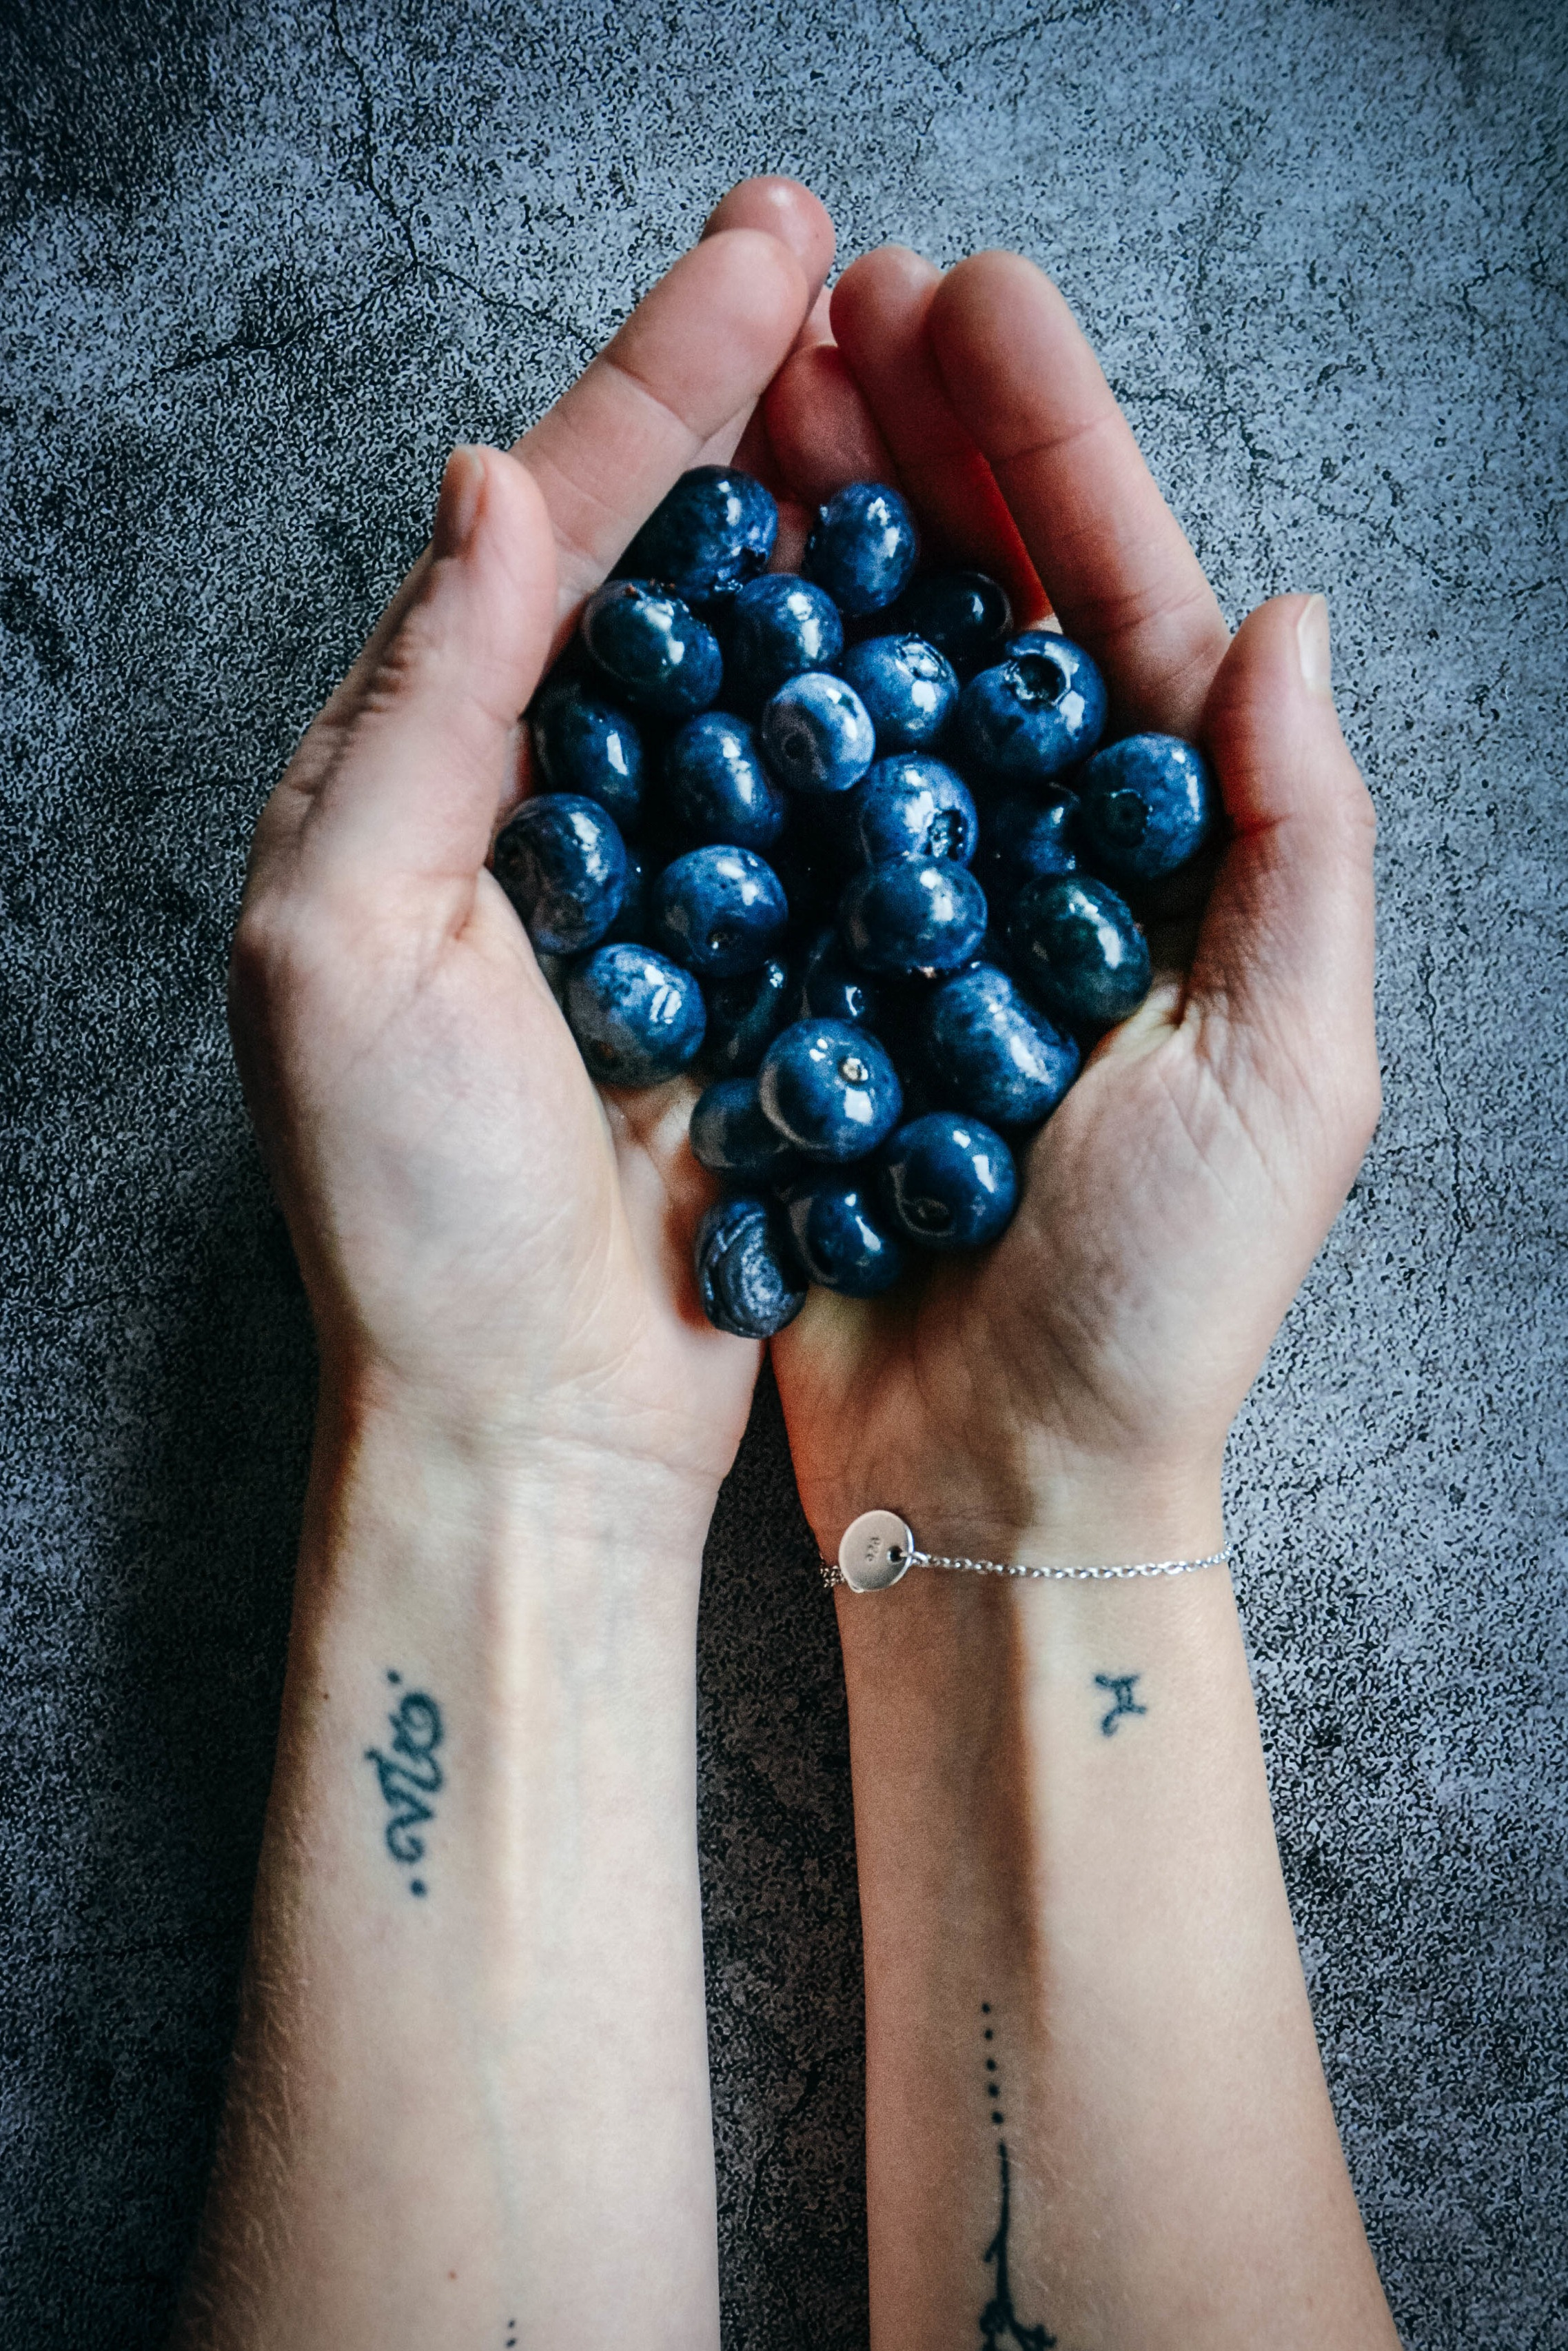 Hands and blueberries